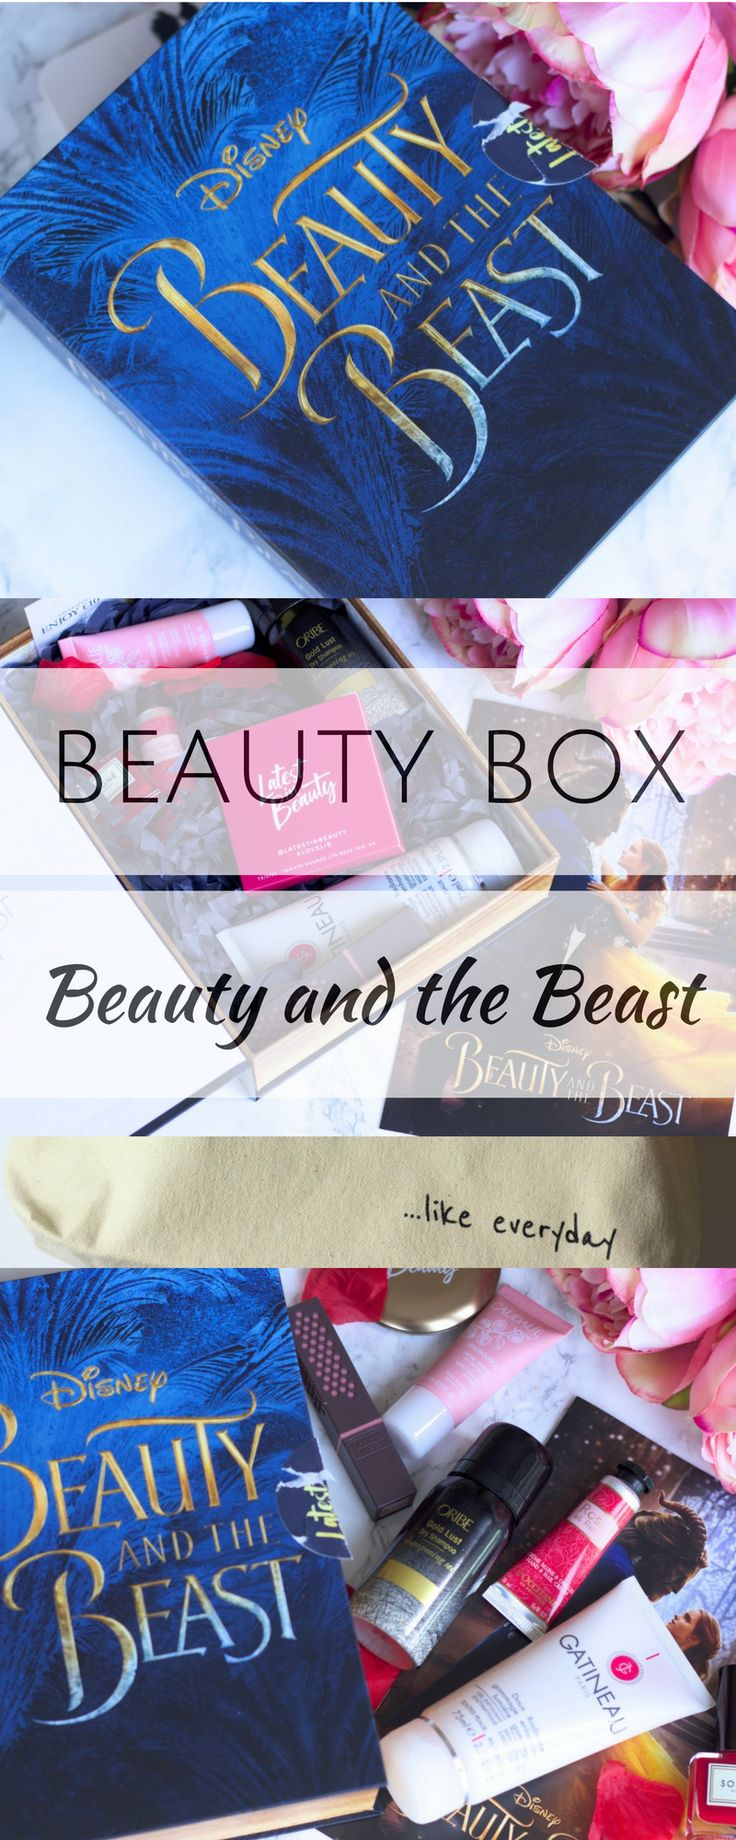 The Beauty and the Beast Beauty Box ♥️